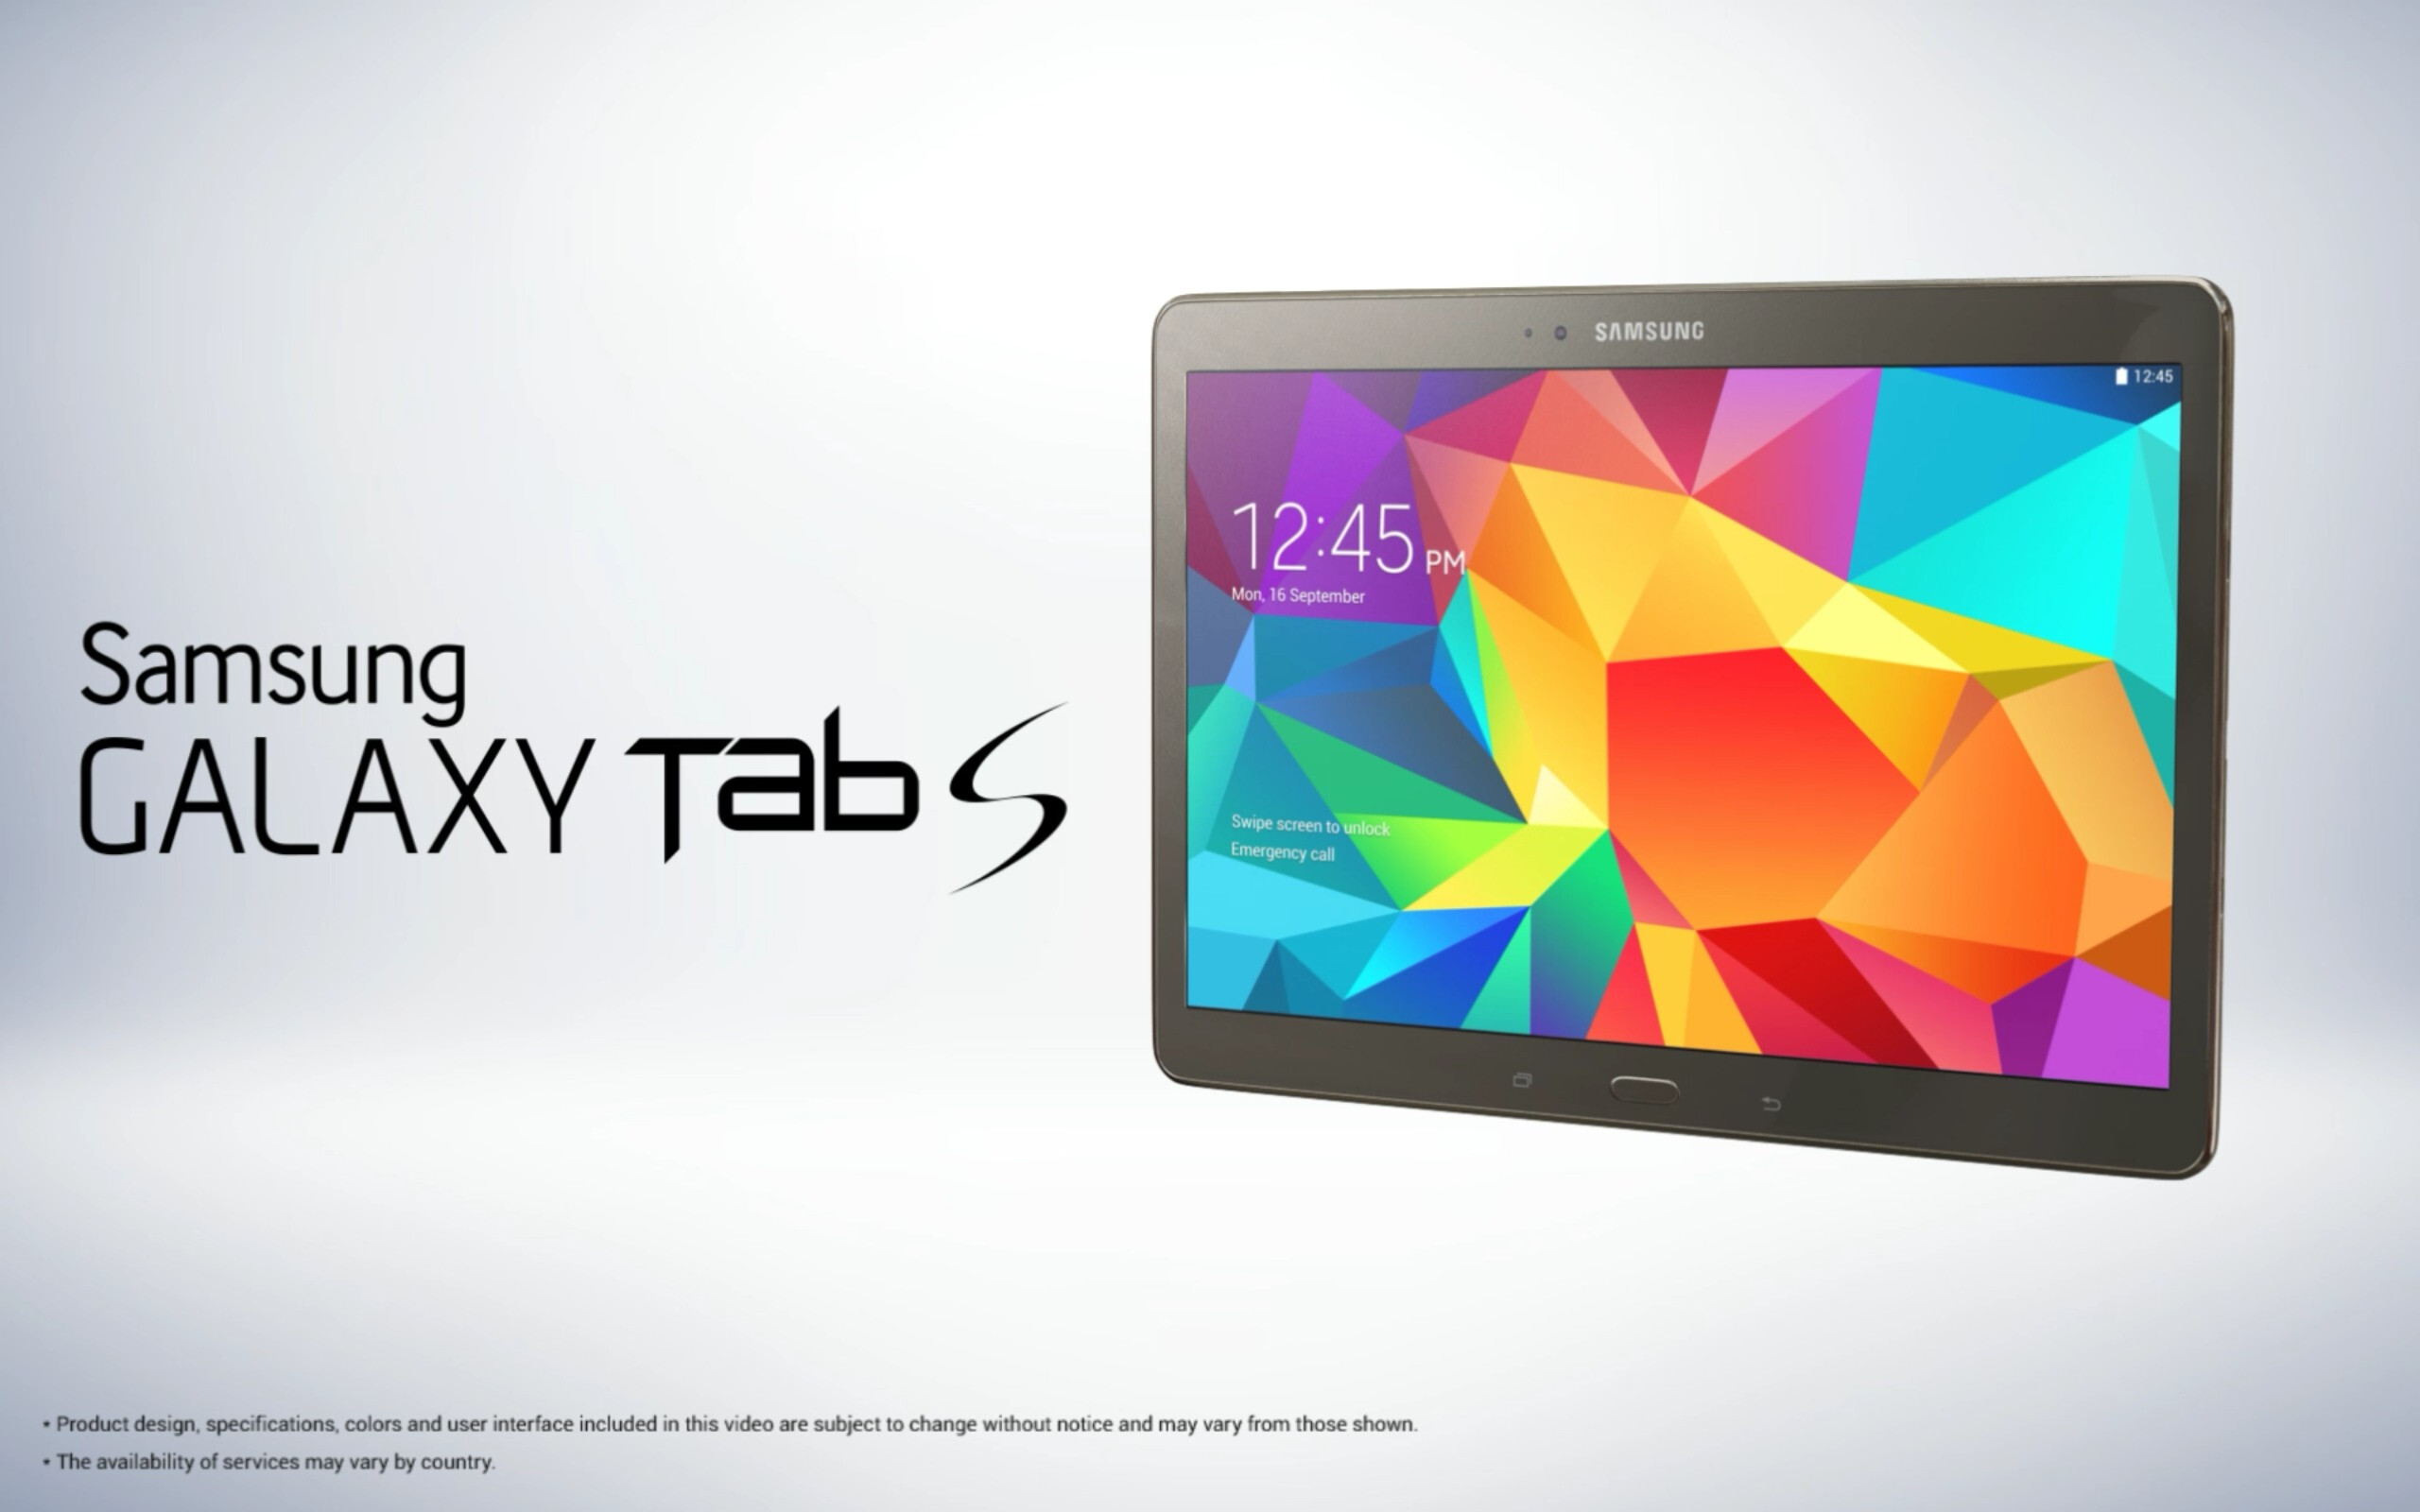 new samsung galaxy tab s 10 5 images show how thin the tablet is  reveal extra features samsung camera wb800f user manual samsung s6 camera user guide